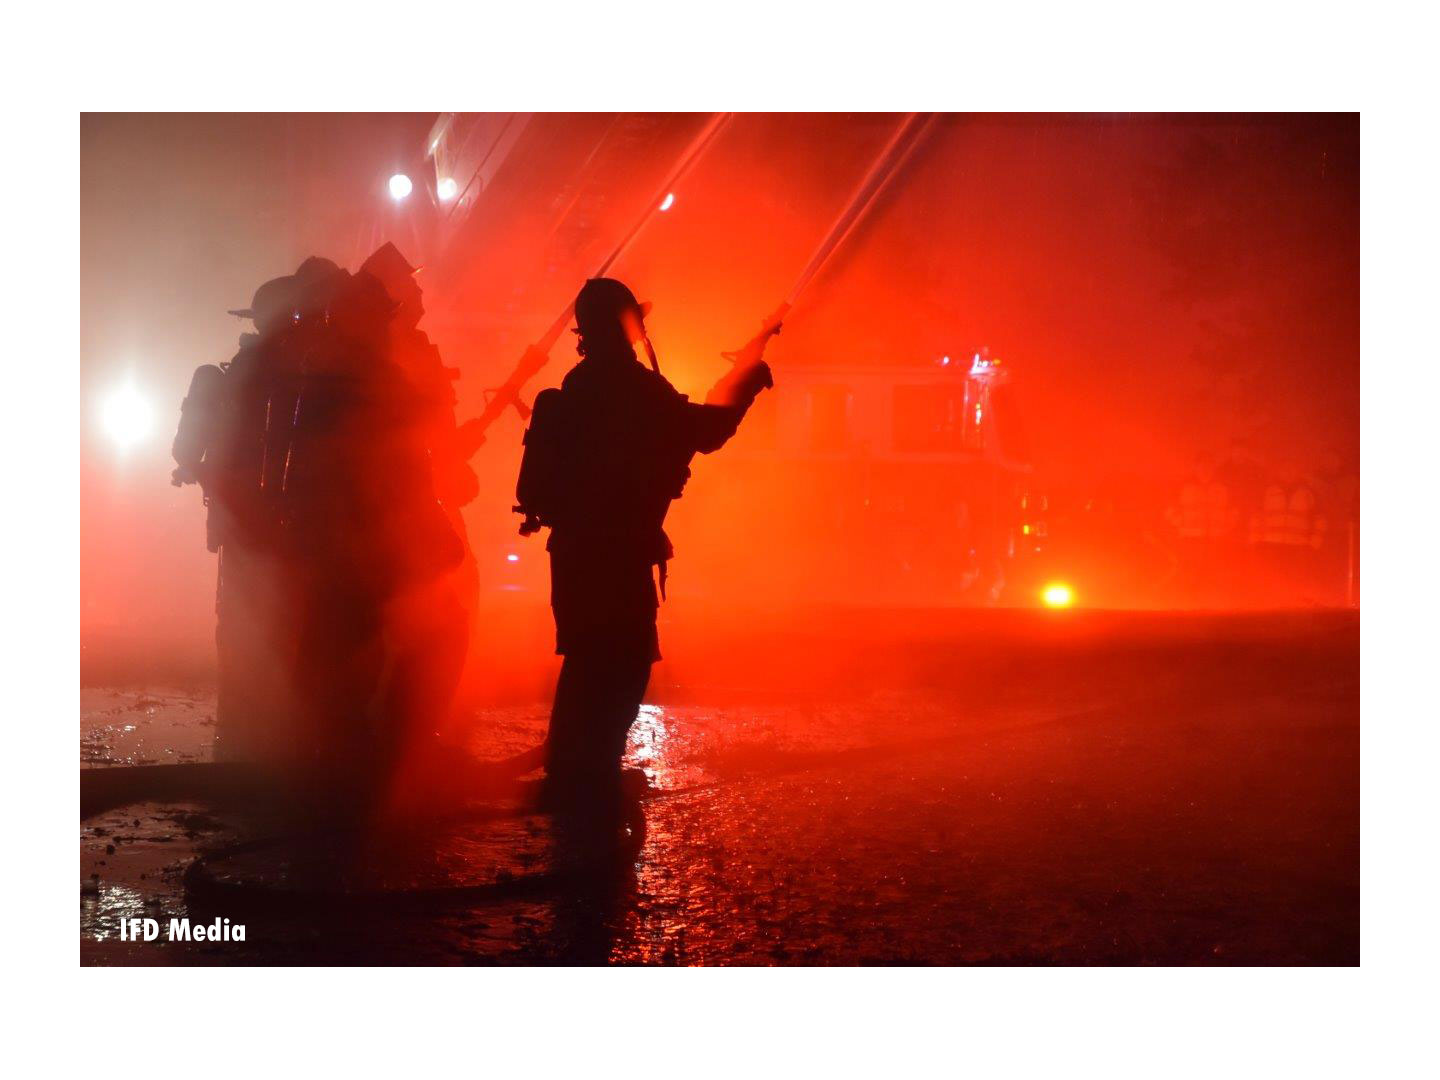 Firefighters operating hoselines